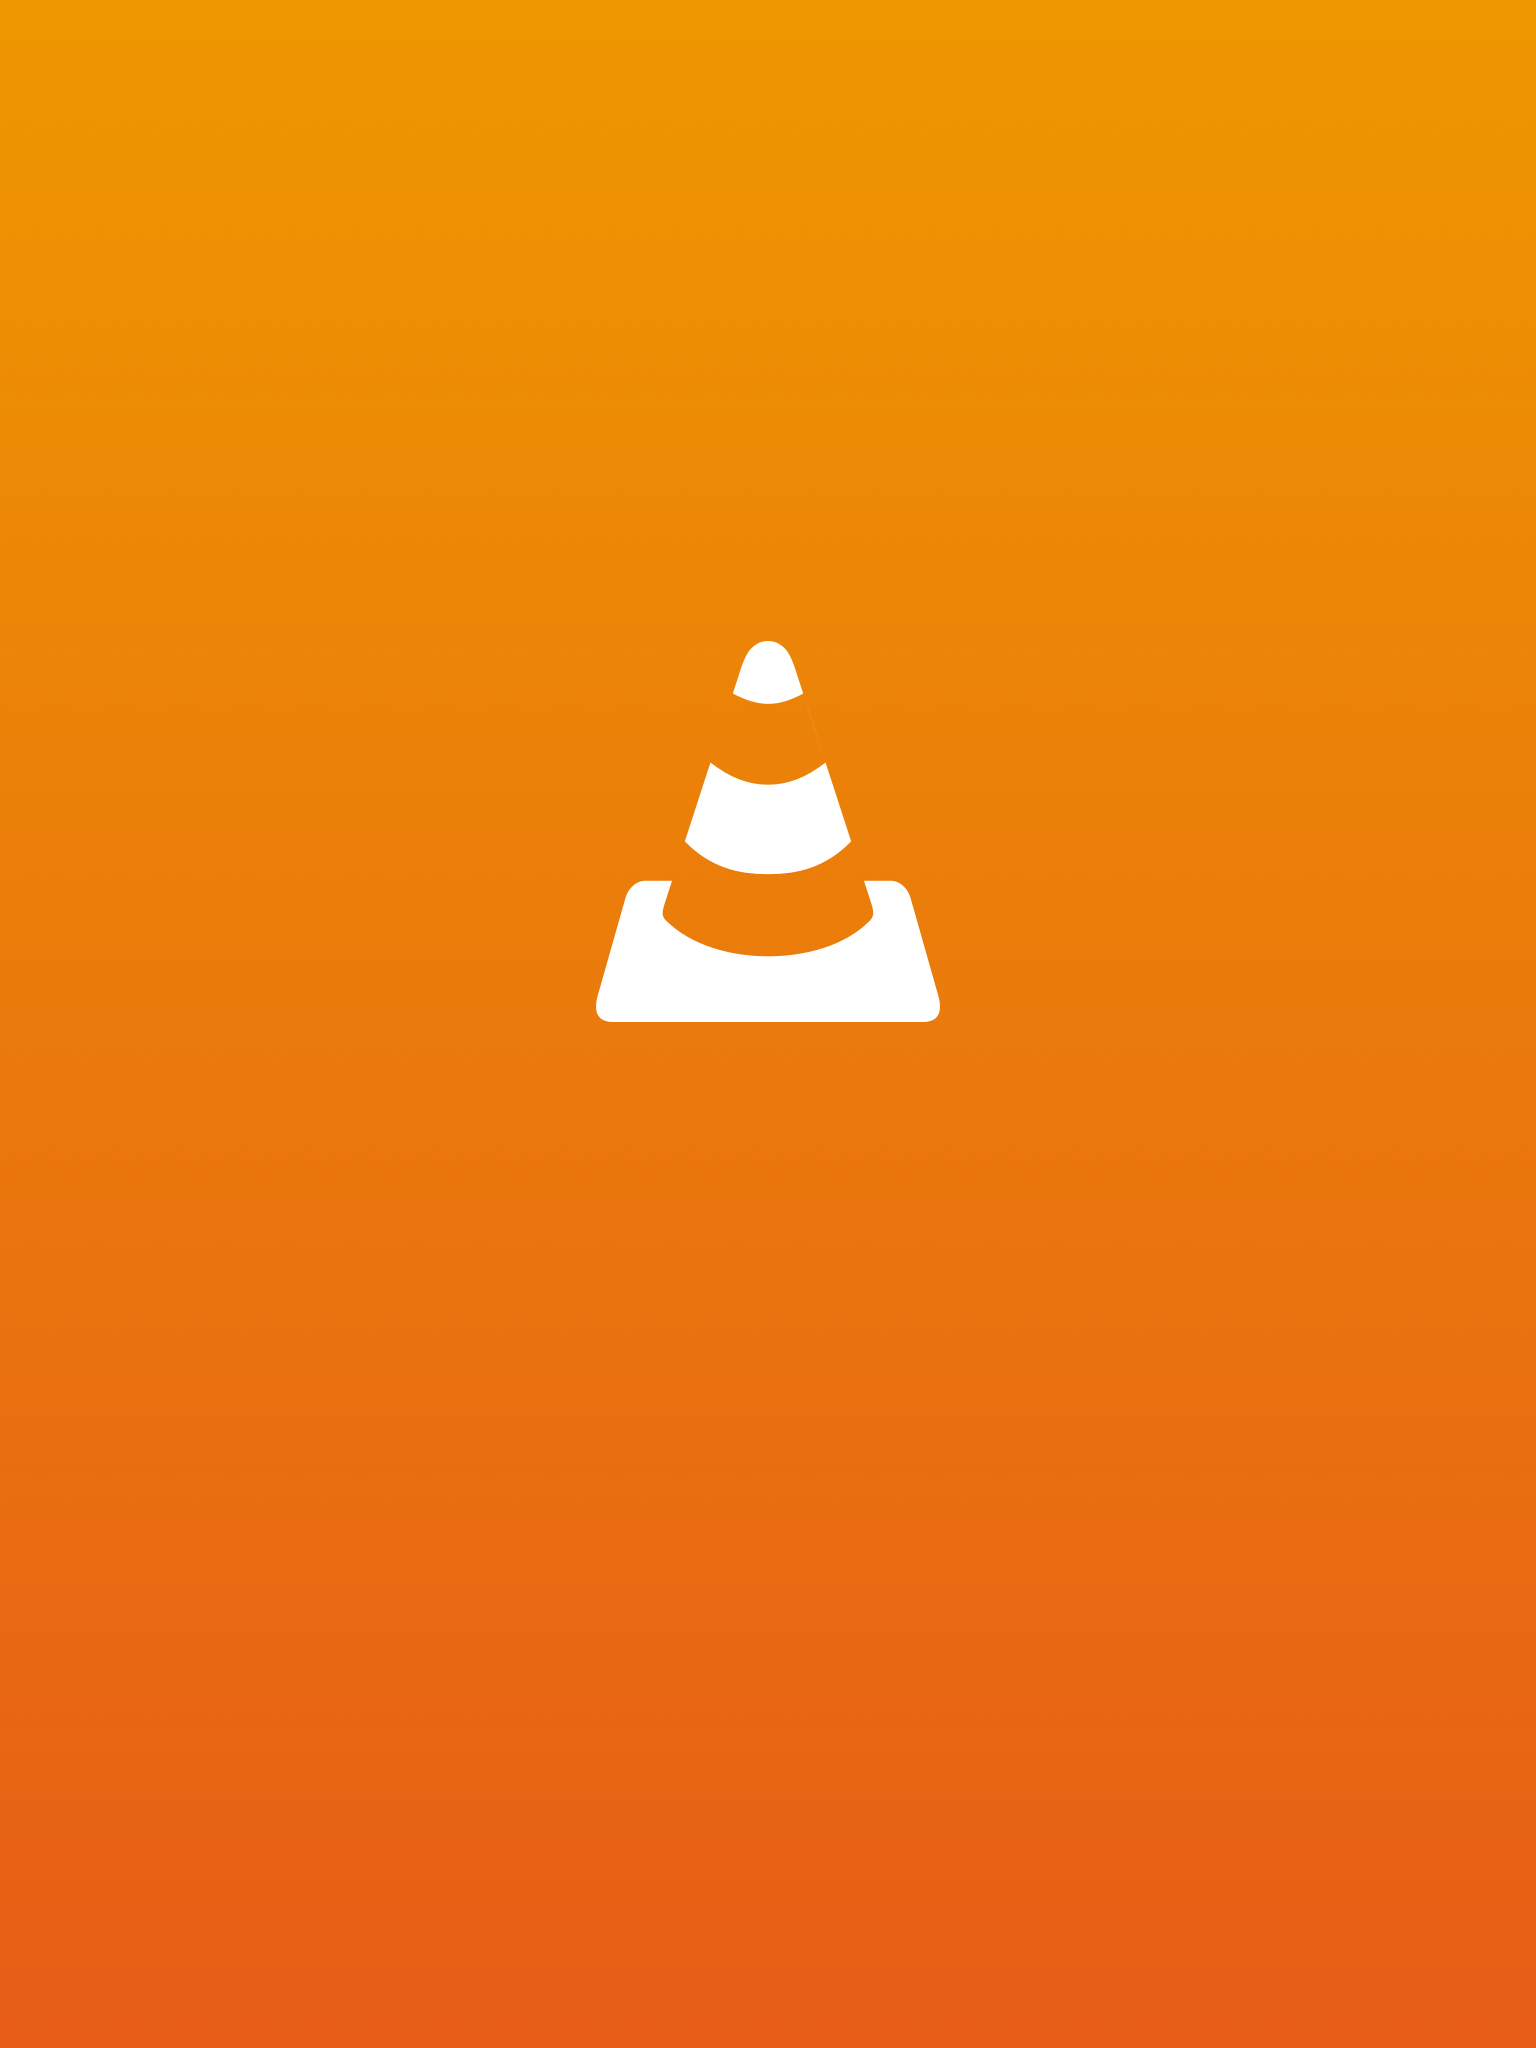 vlc-ios/Images.xcassets/LaunchImage.launchimage/iPad@2x.png